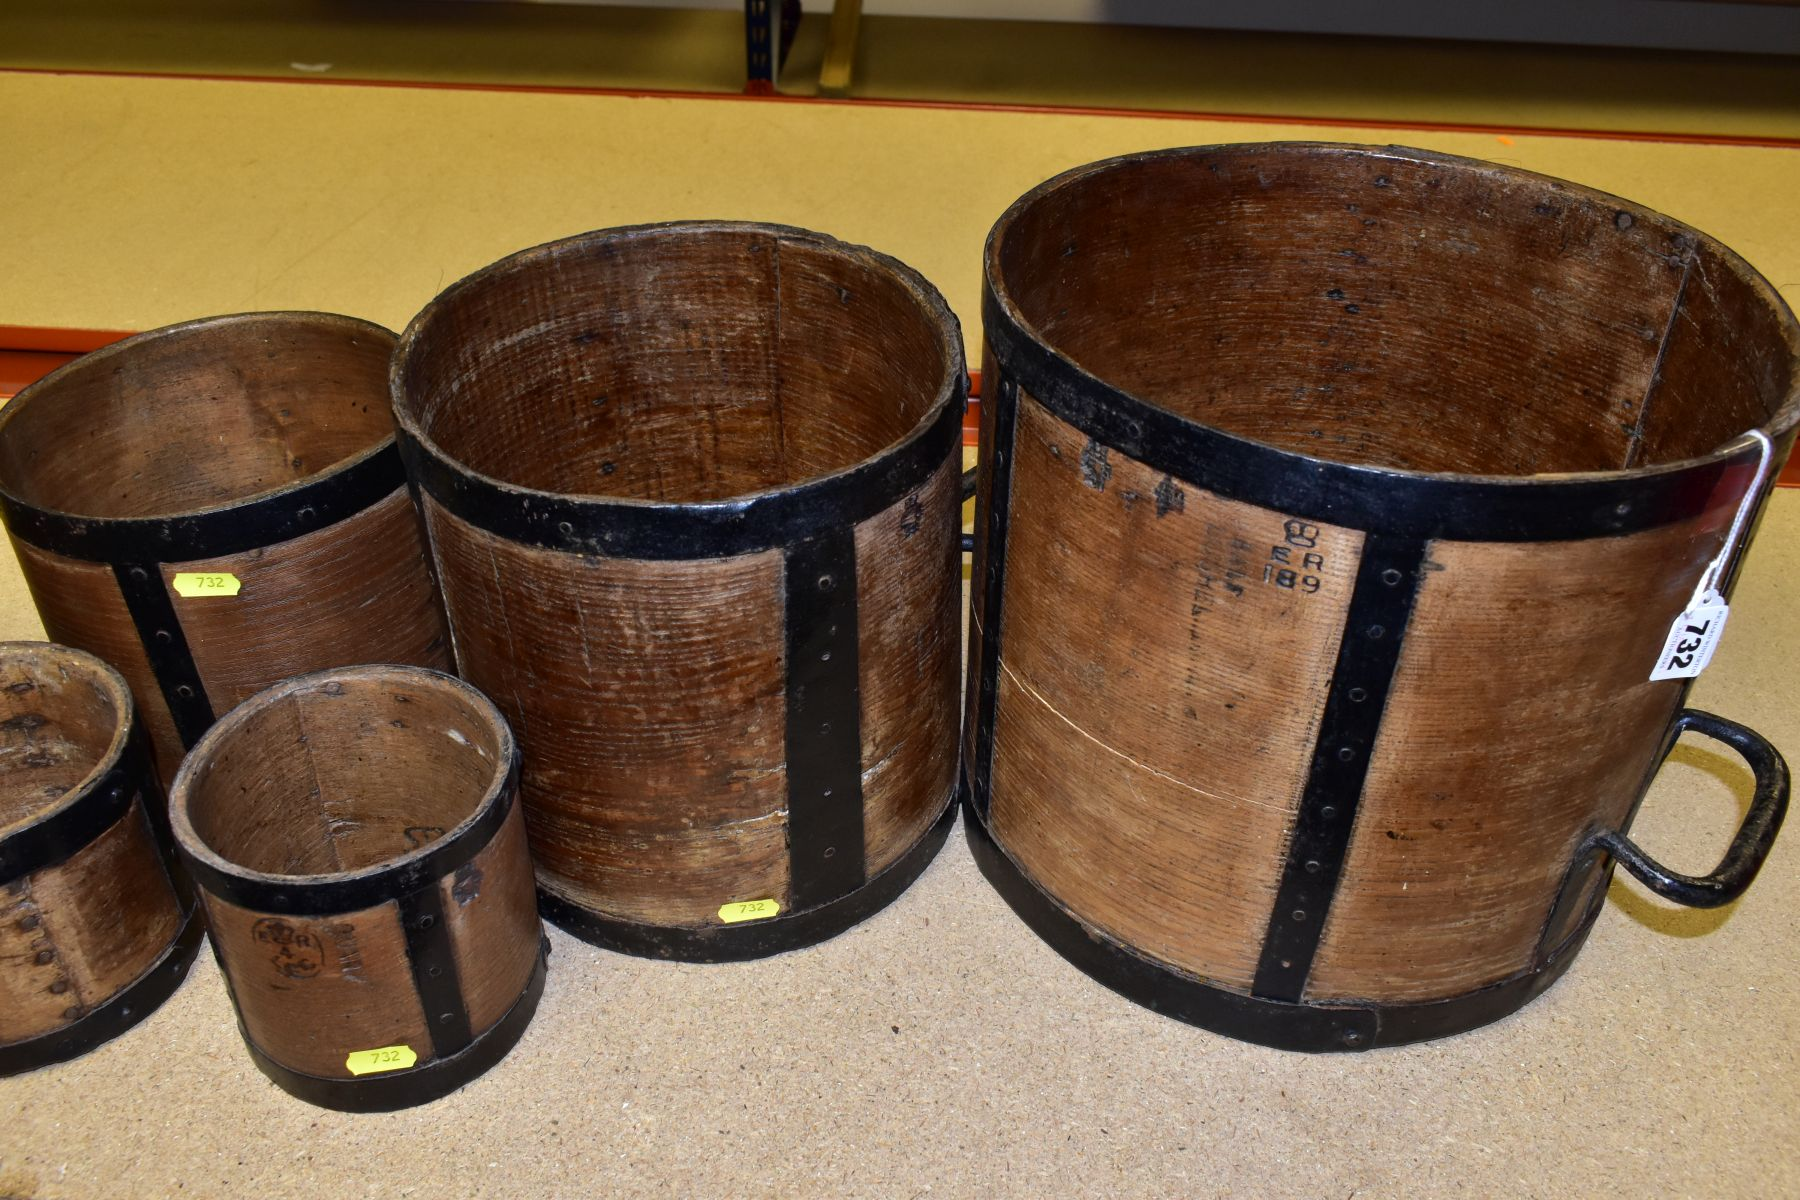 SIX BENTWOOD CORN MEASURES WITH IRON BANDING, sizes are half bushell, peck, gallon (x2) and quart ( - Image 5 of 6